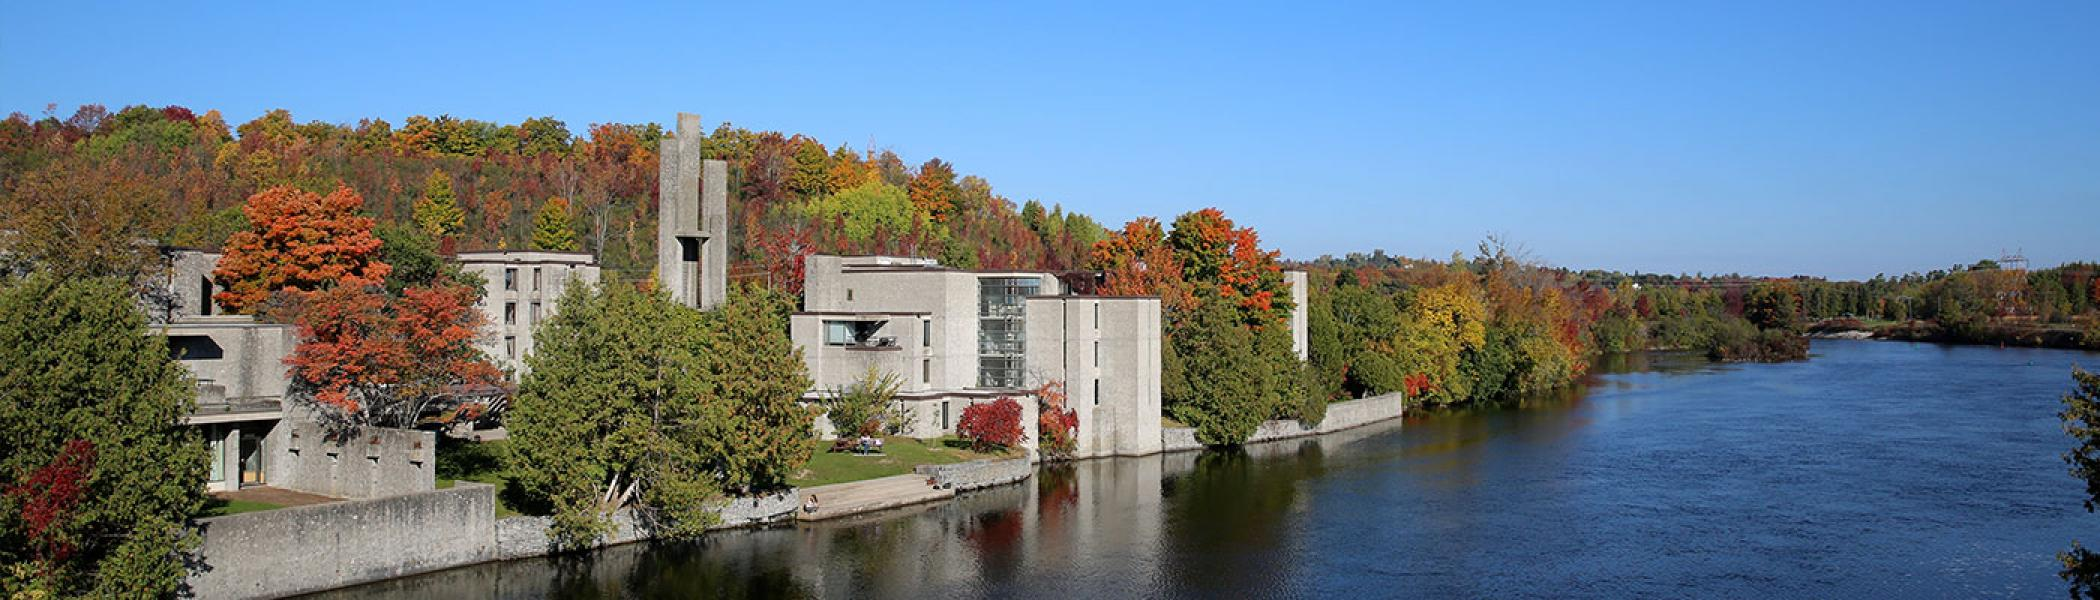 Champlain College in the fall from across the river